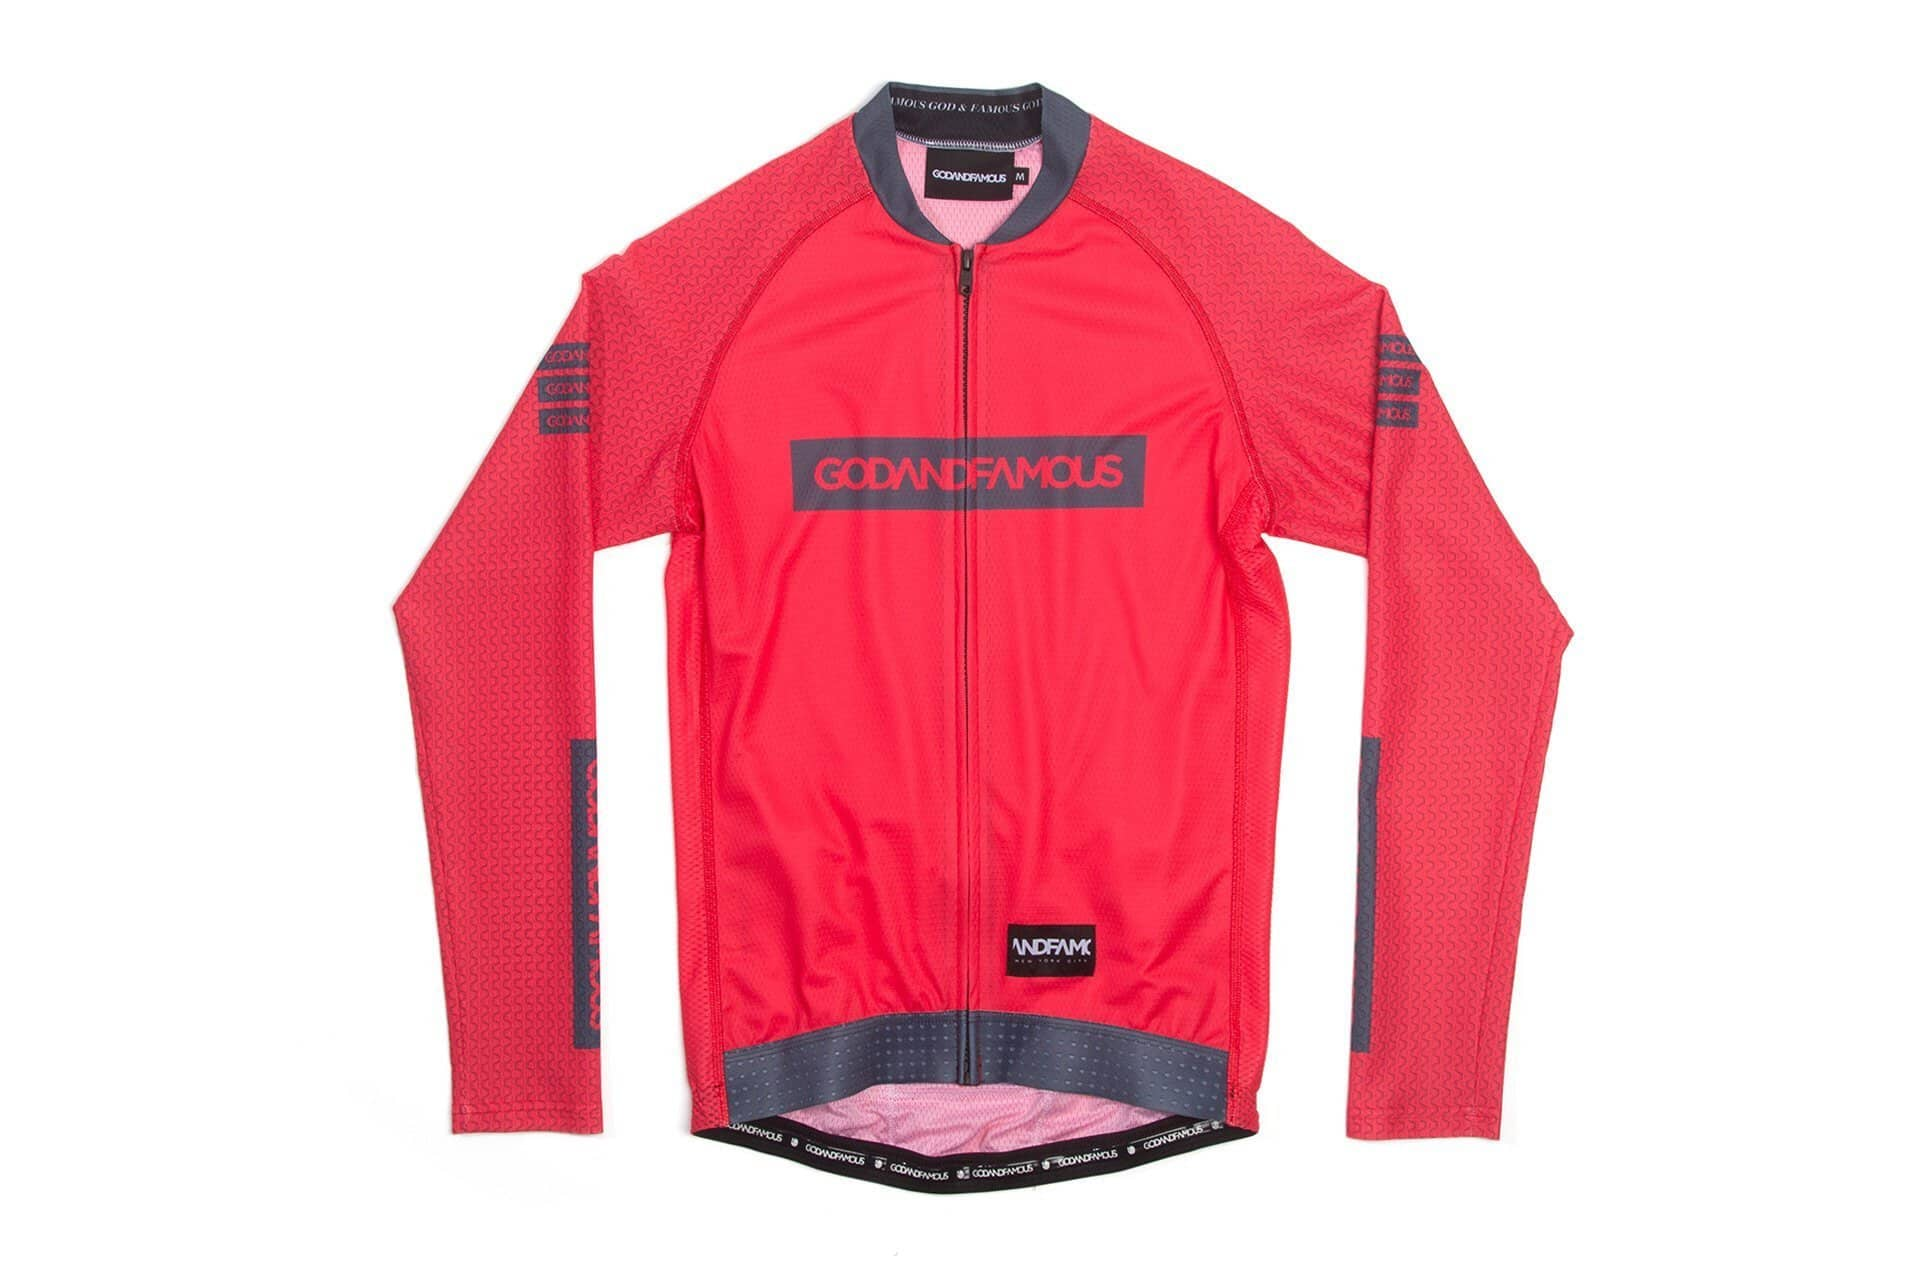 GOD & FAMOUS 'Kinda Orange' Long Sleeve Jersey